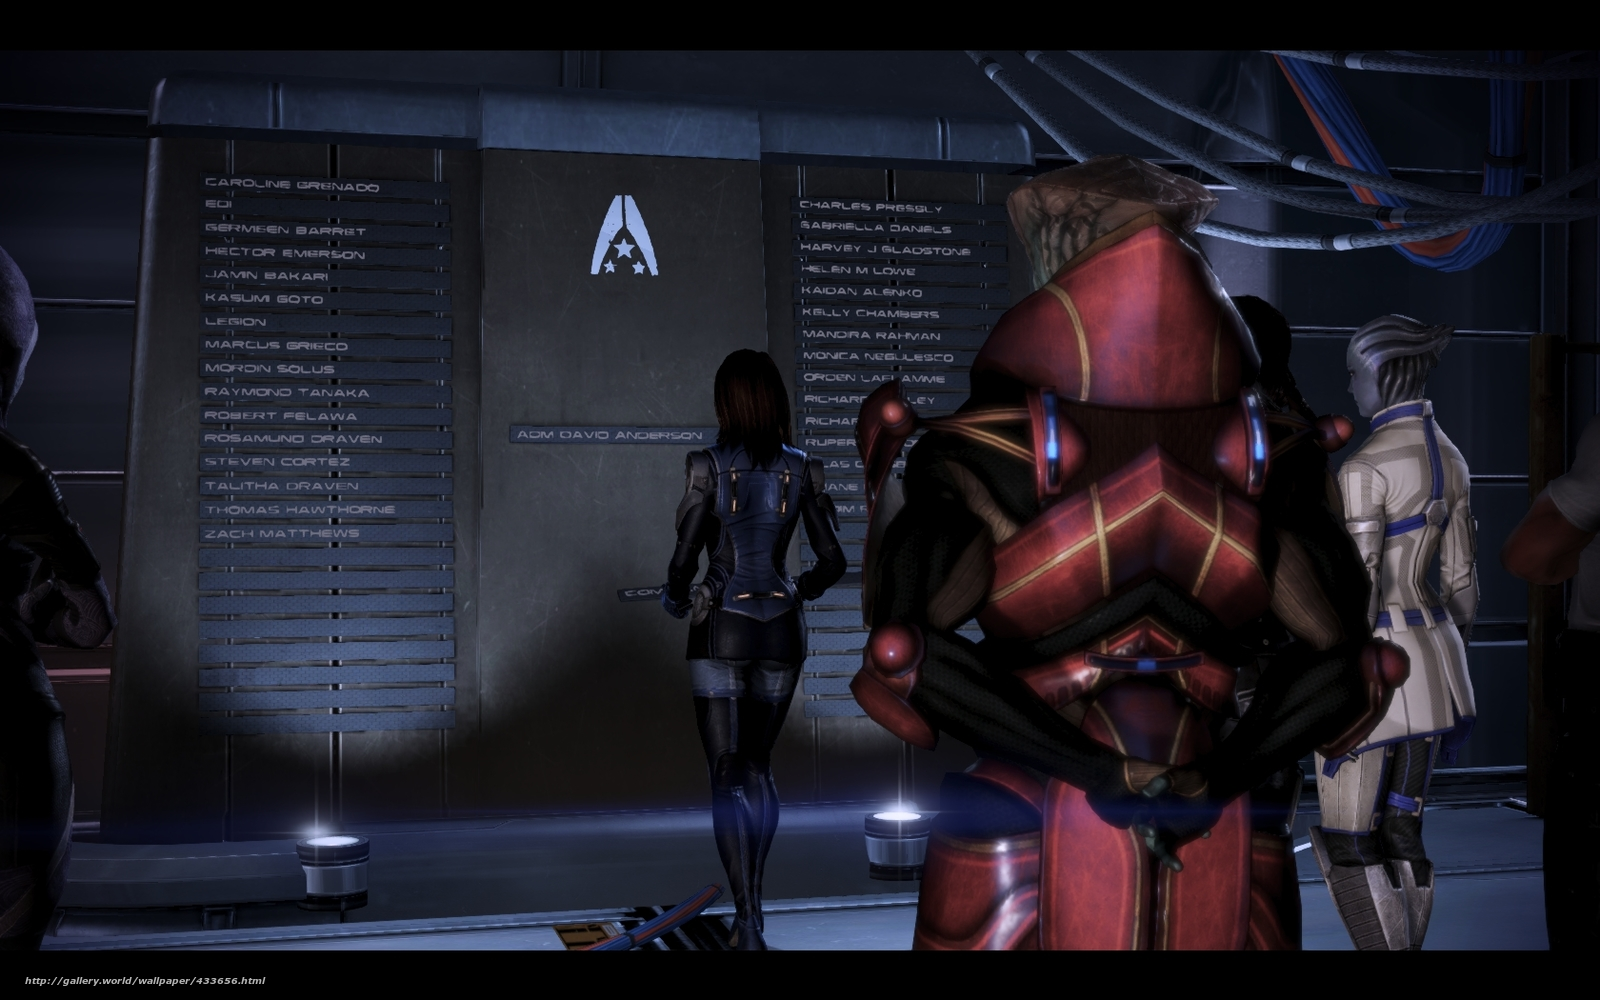 Mass effect ashley nackt nude picture